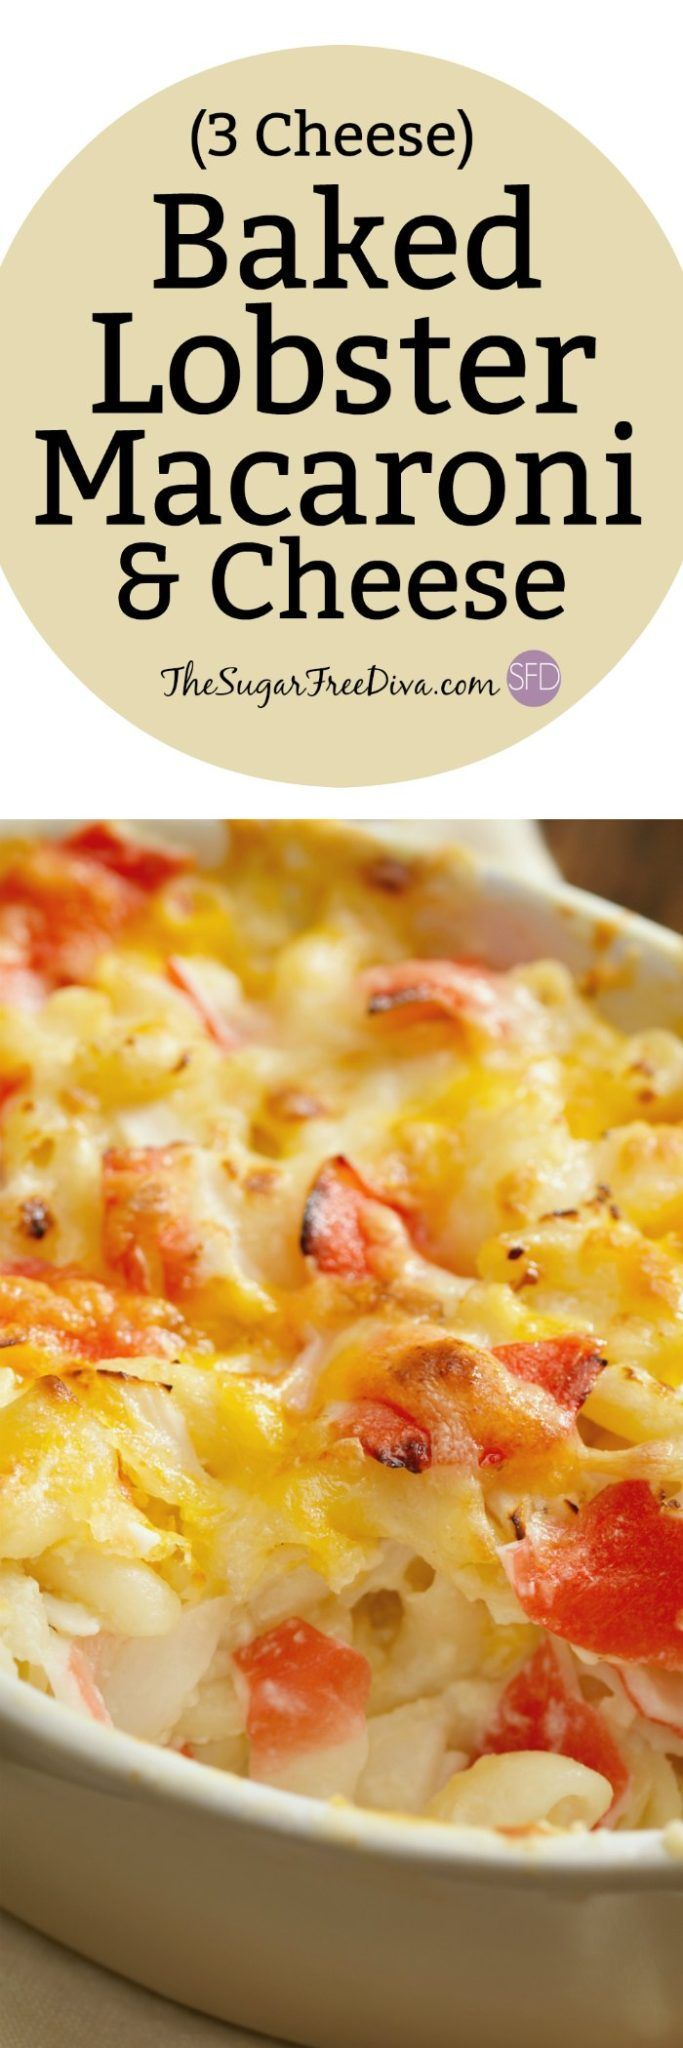 3 Cheese Lobster Macaroni And Cheese Recipe Lobster